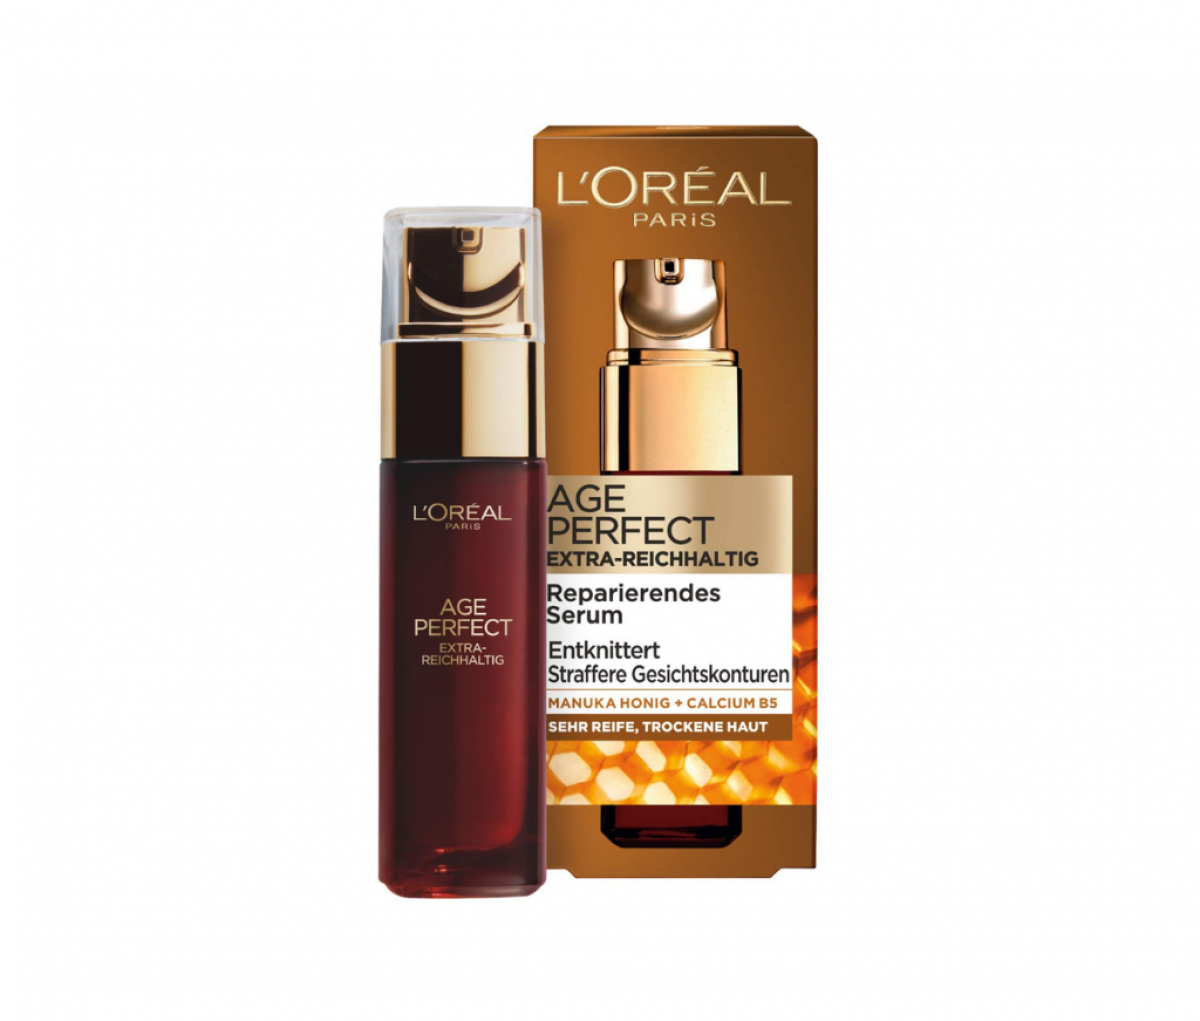 L'Oreal Age Perfect Extra Rich Face Serum